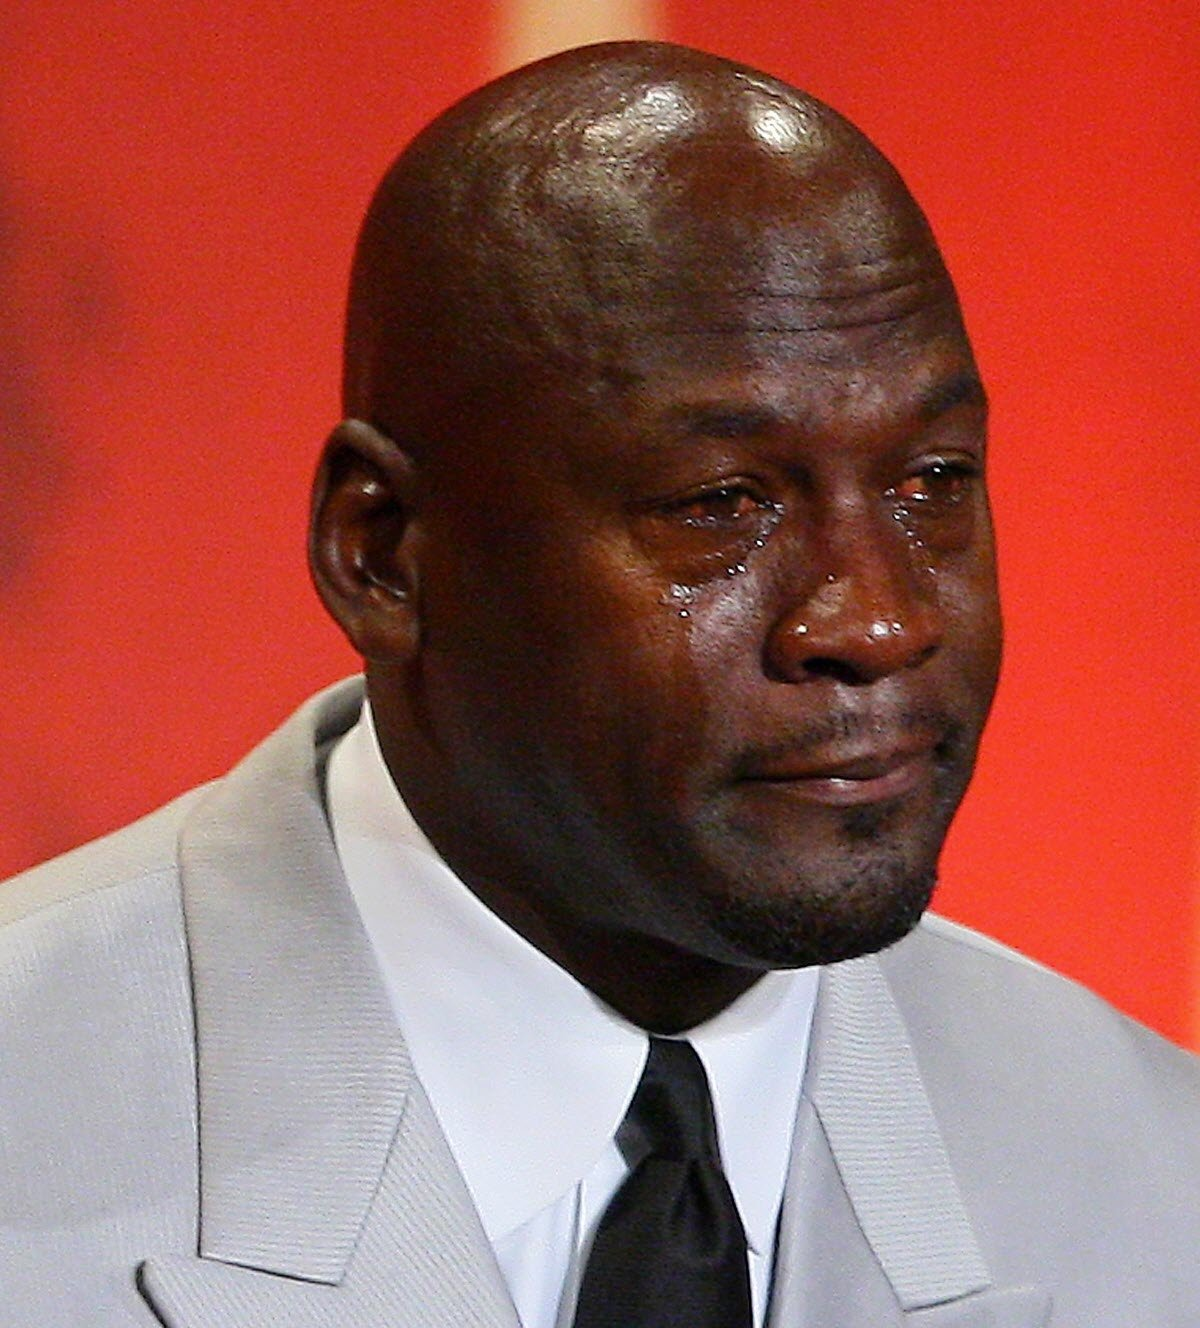 bonus-this-photo-of-michael-jordan-was-taken-in-2009-but-it-makes-this-list-as-crying-jordan-became-the-biggest-meme-in-sports-this-year-and-it-wouldnt-feel-right-to-leave-it-out